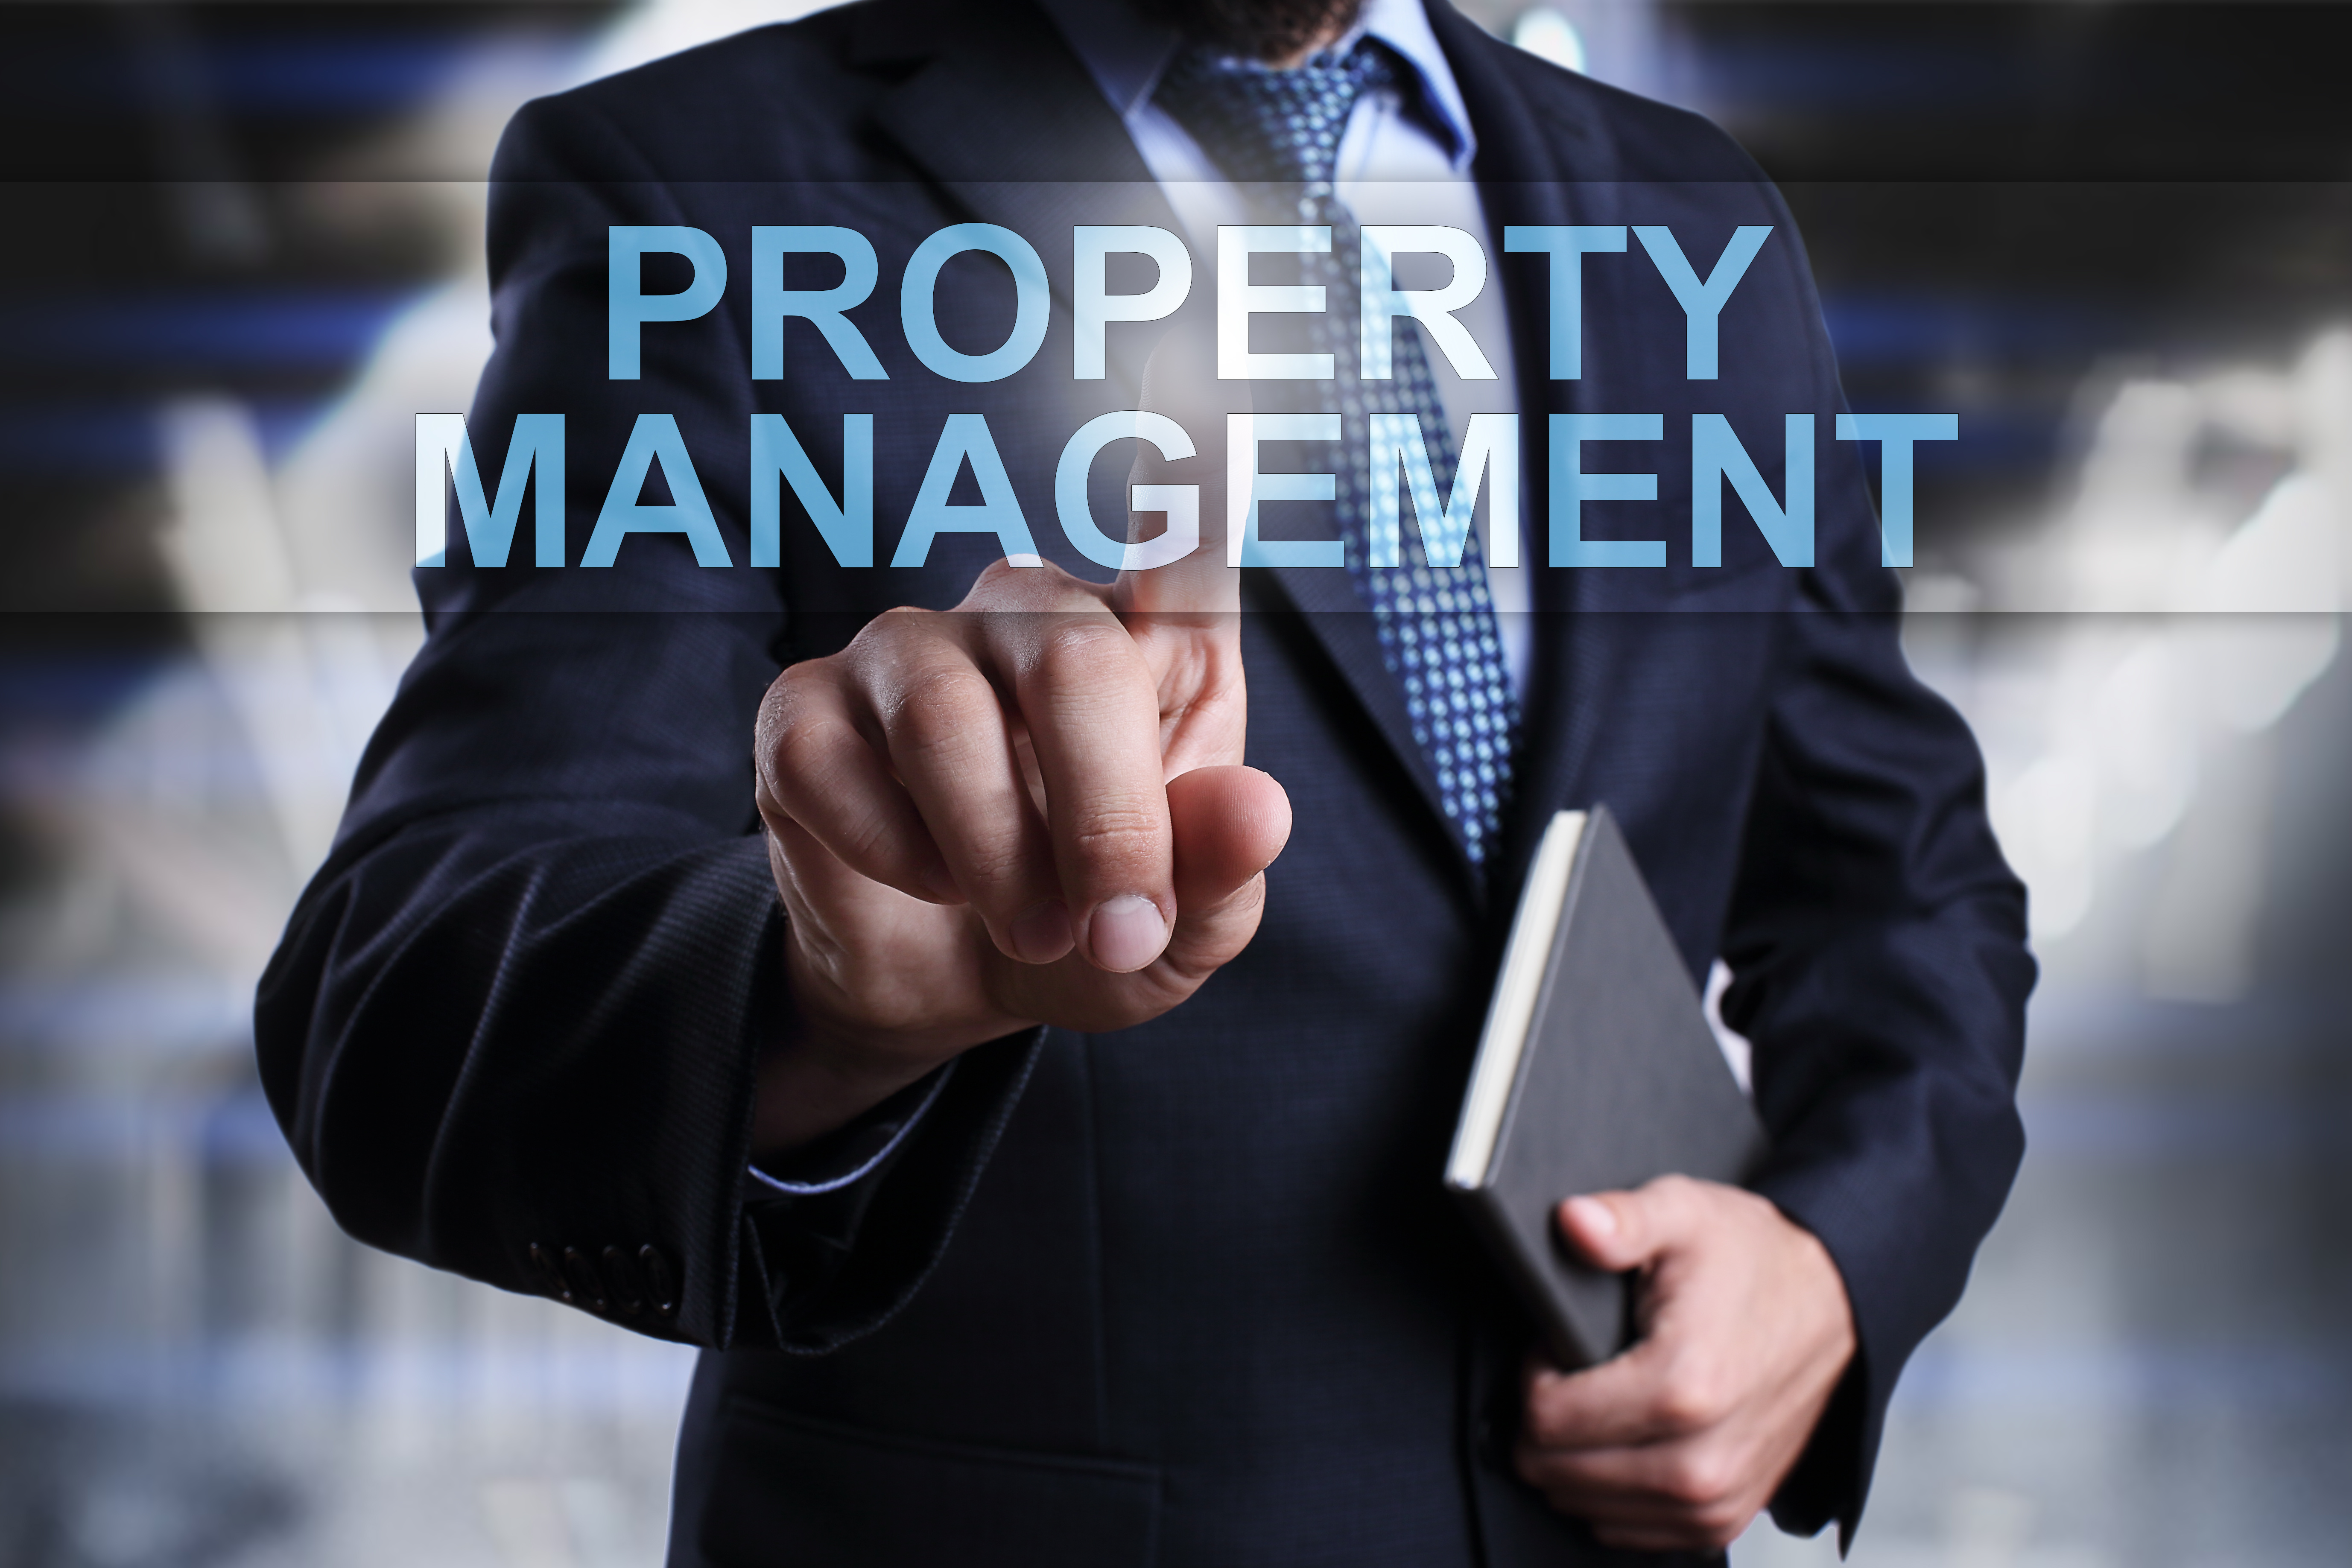 Businessman is pressing button on virtual screen and selecting Property Management.